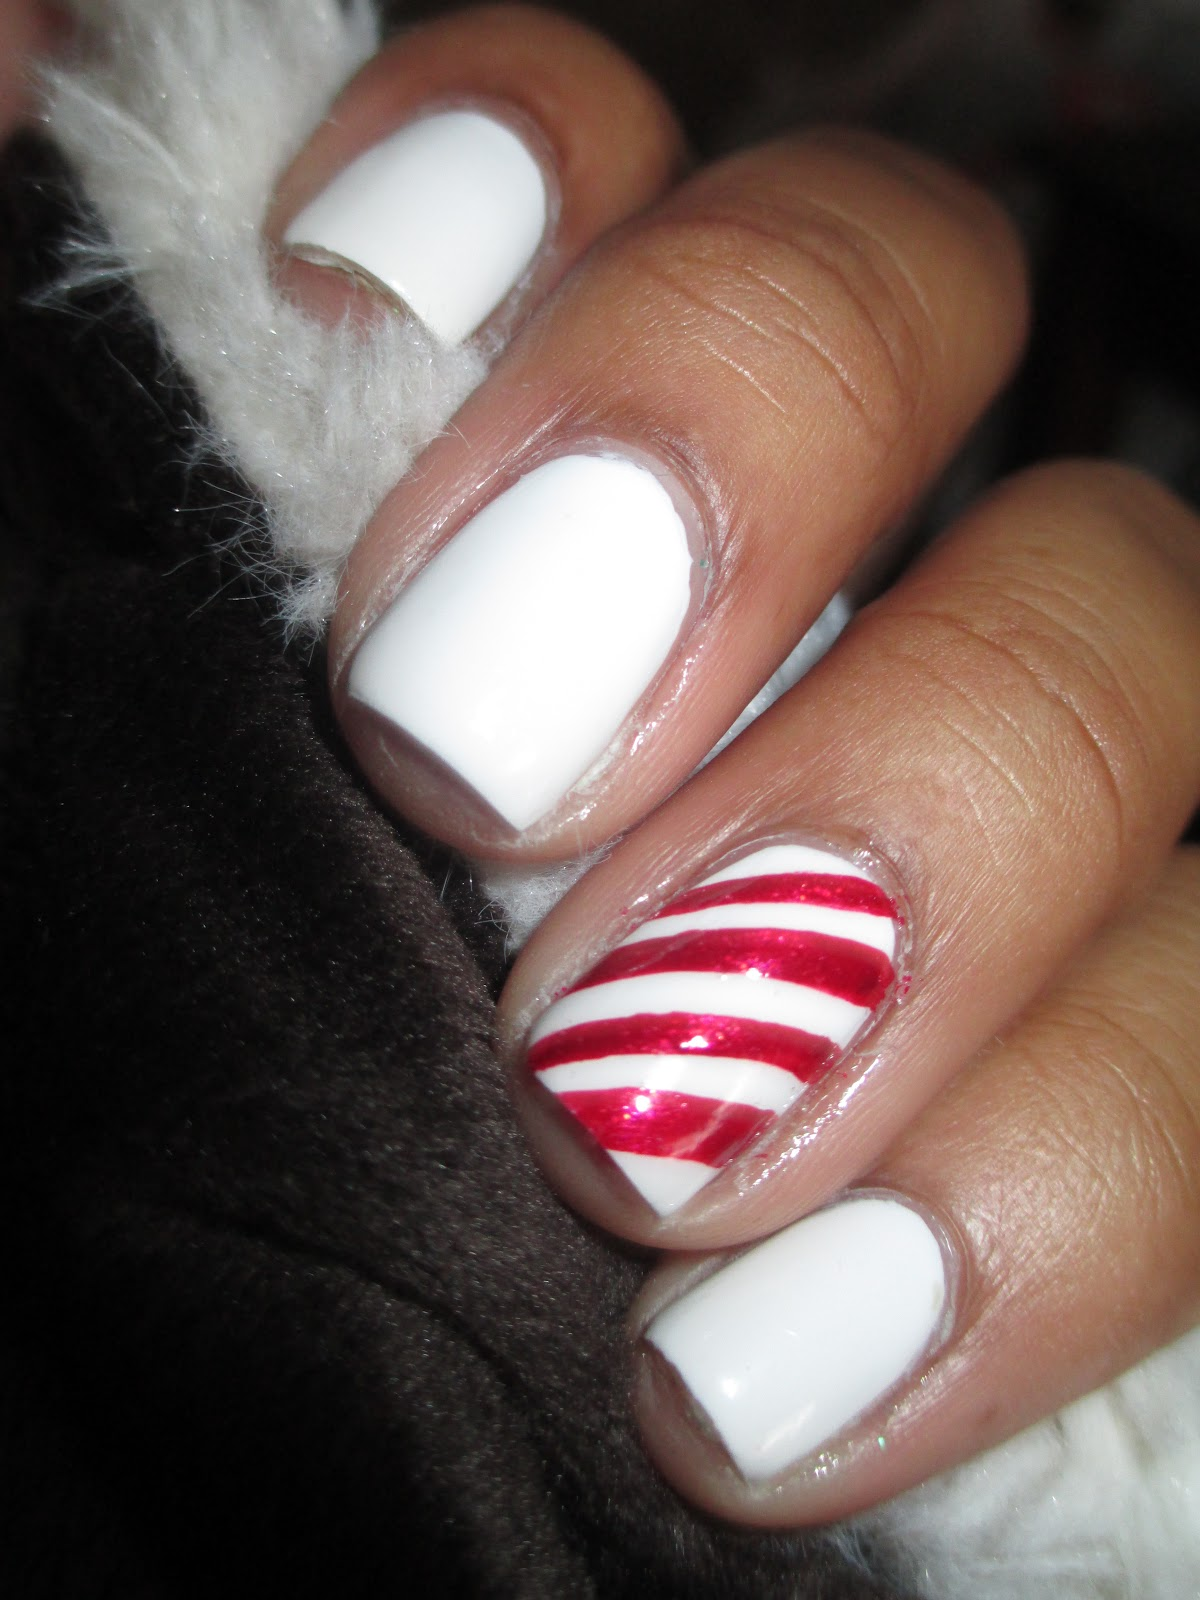 Fairly charming 12 manis of christmas 7 candy canes christmas candy cane nails nail art nail design mani prinsesfo Image collections